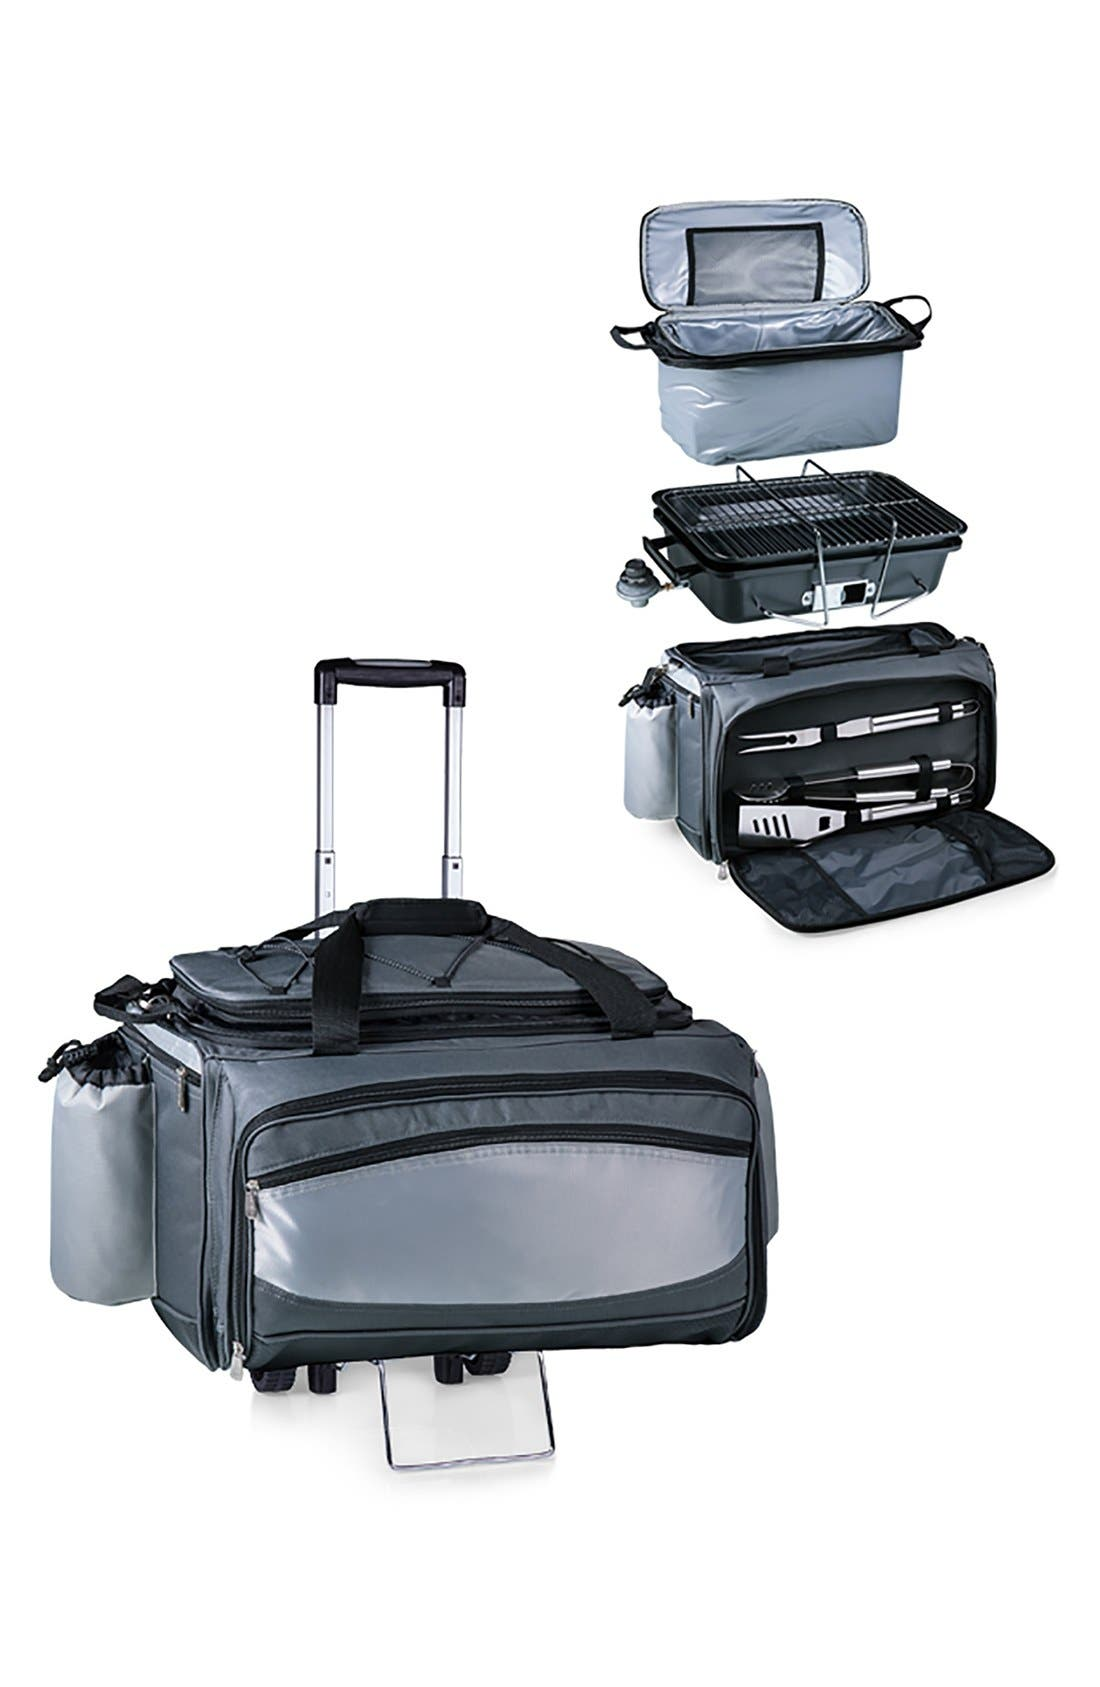 Picnic Time 'Vulcan' BarbecueGrill & Cooler Trolley